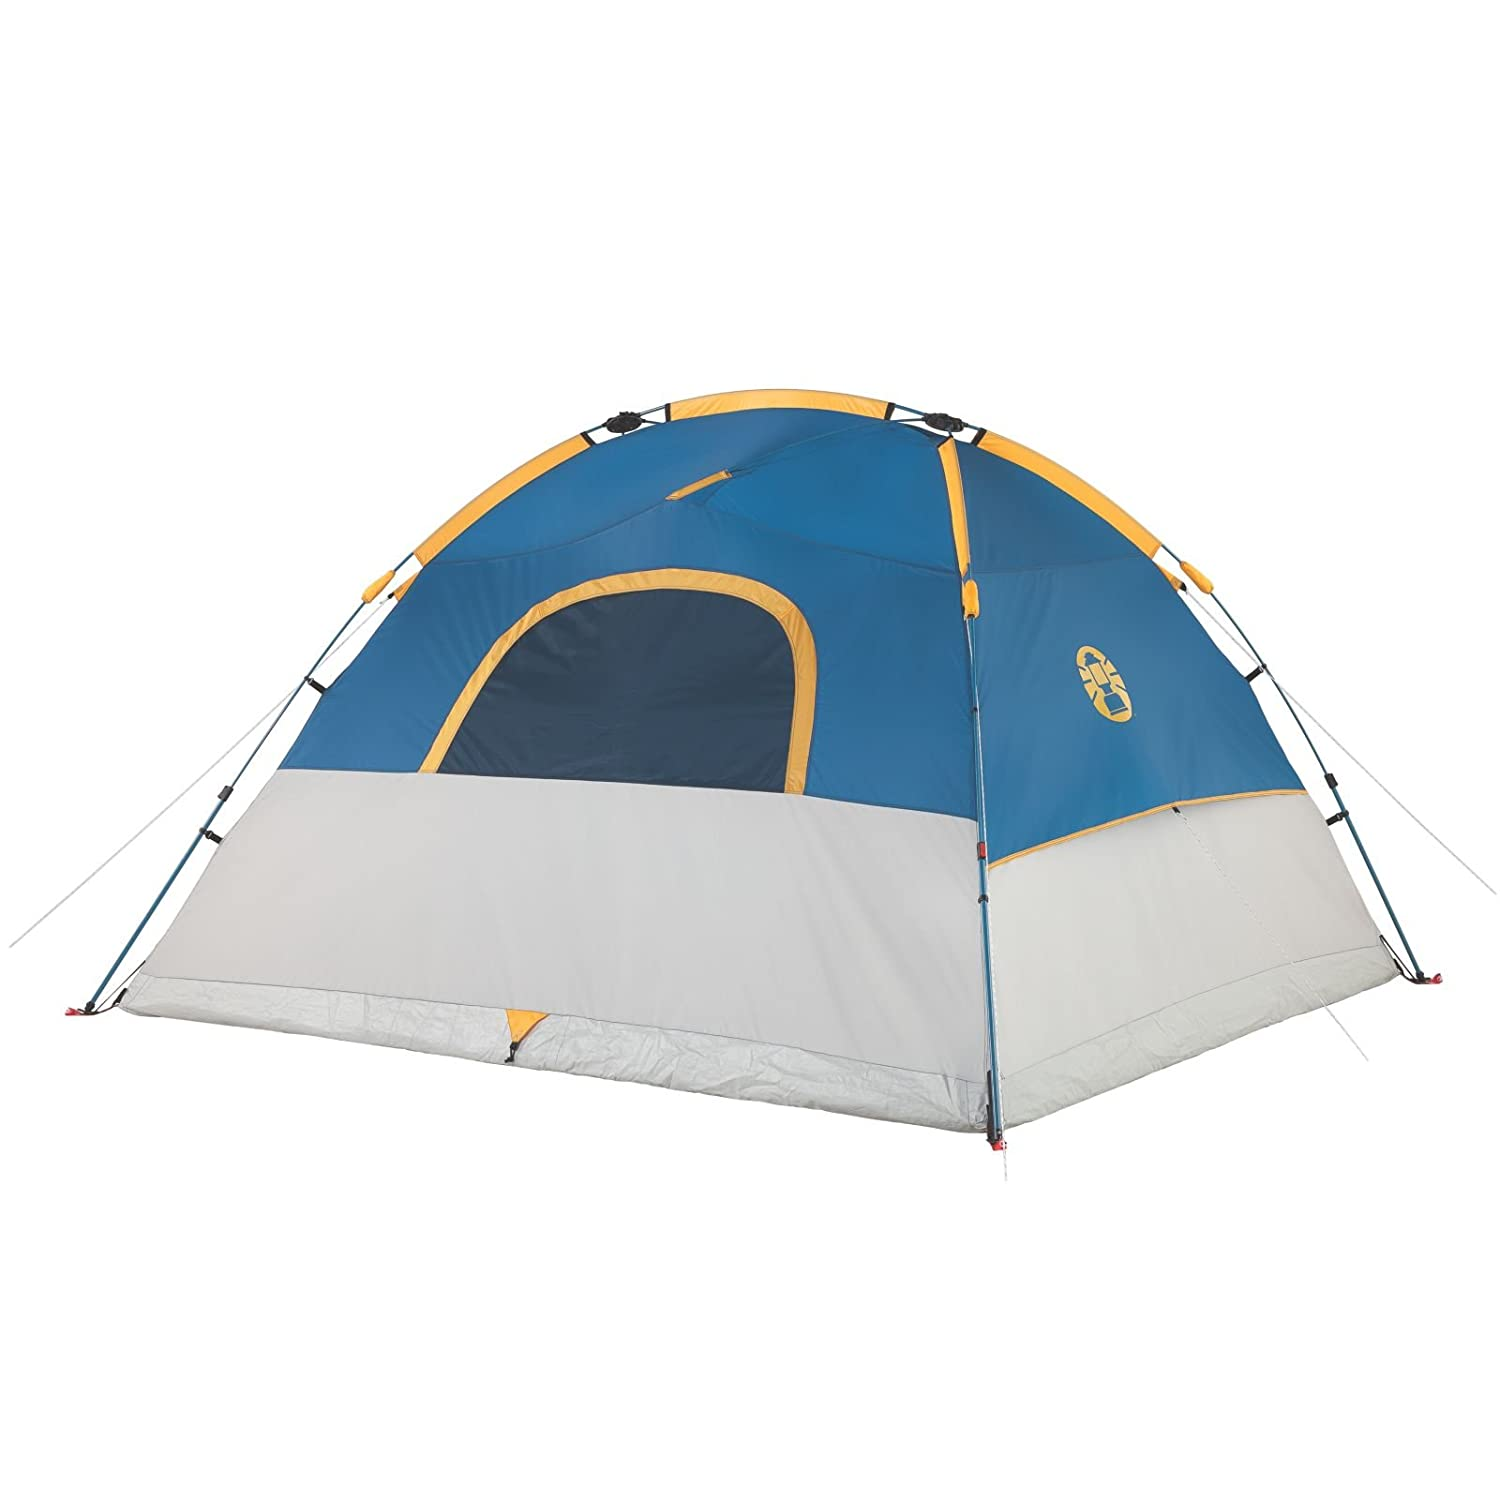 Amazon.com  Coleman C&ing 6 Person Flatiron Instant Dome Tent  Sports u0026 Outdoors  sc 1 st  Amazon.com & Amazon.com : Coleman Camping 6 Person Flatiron Instant Dome Tent ...